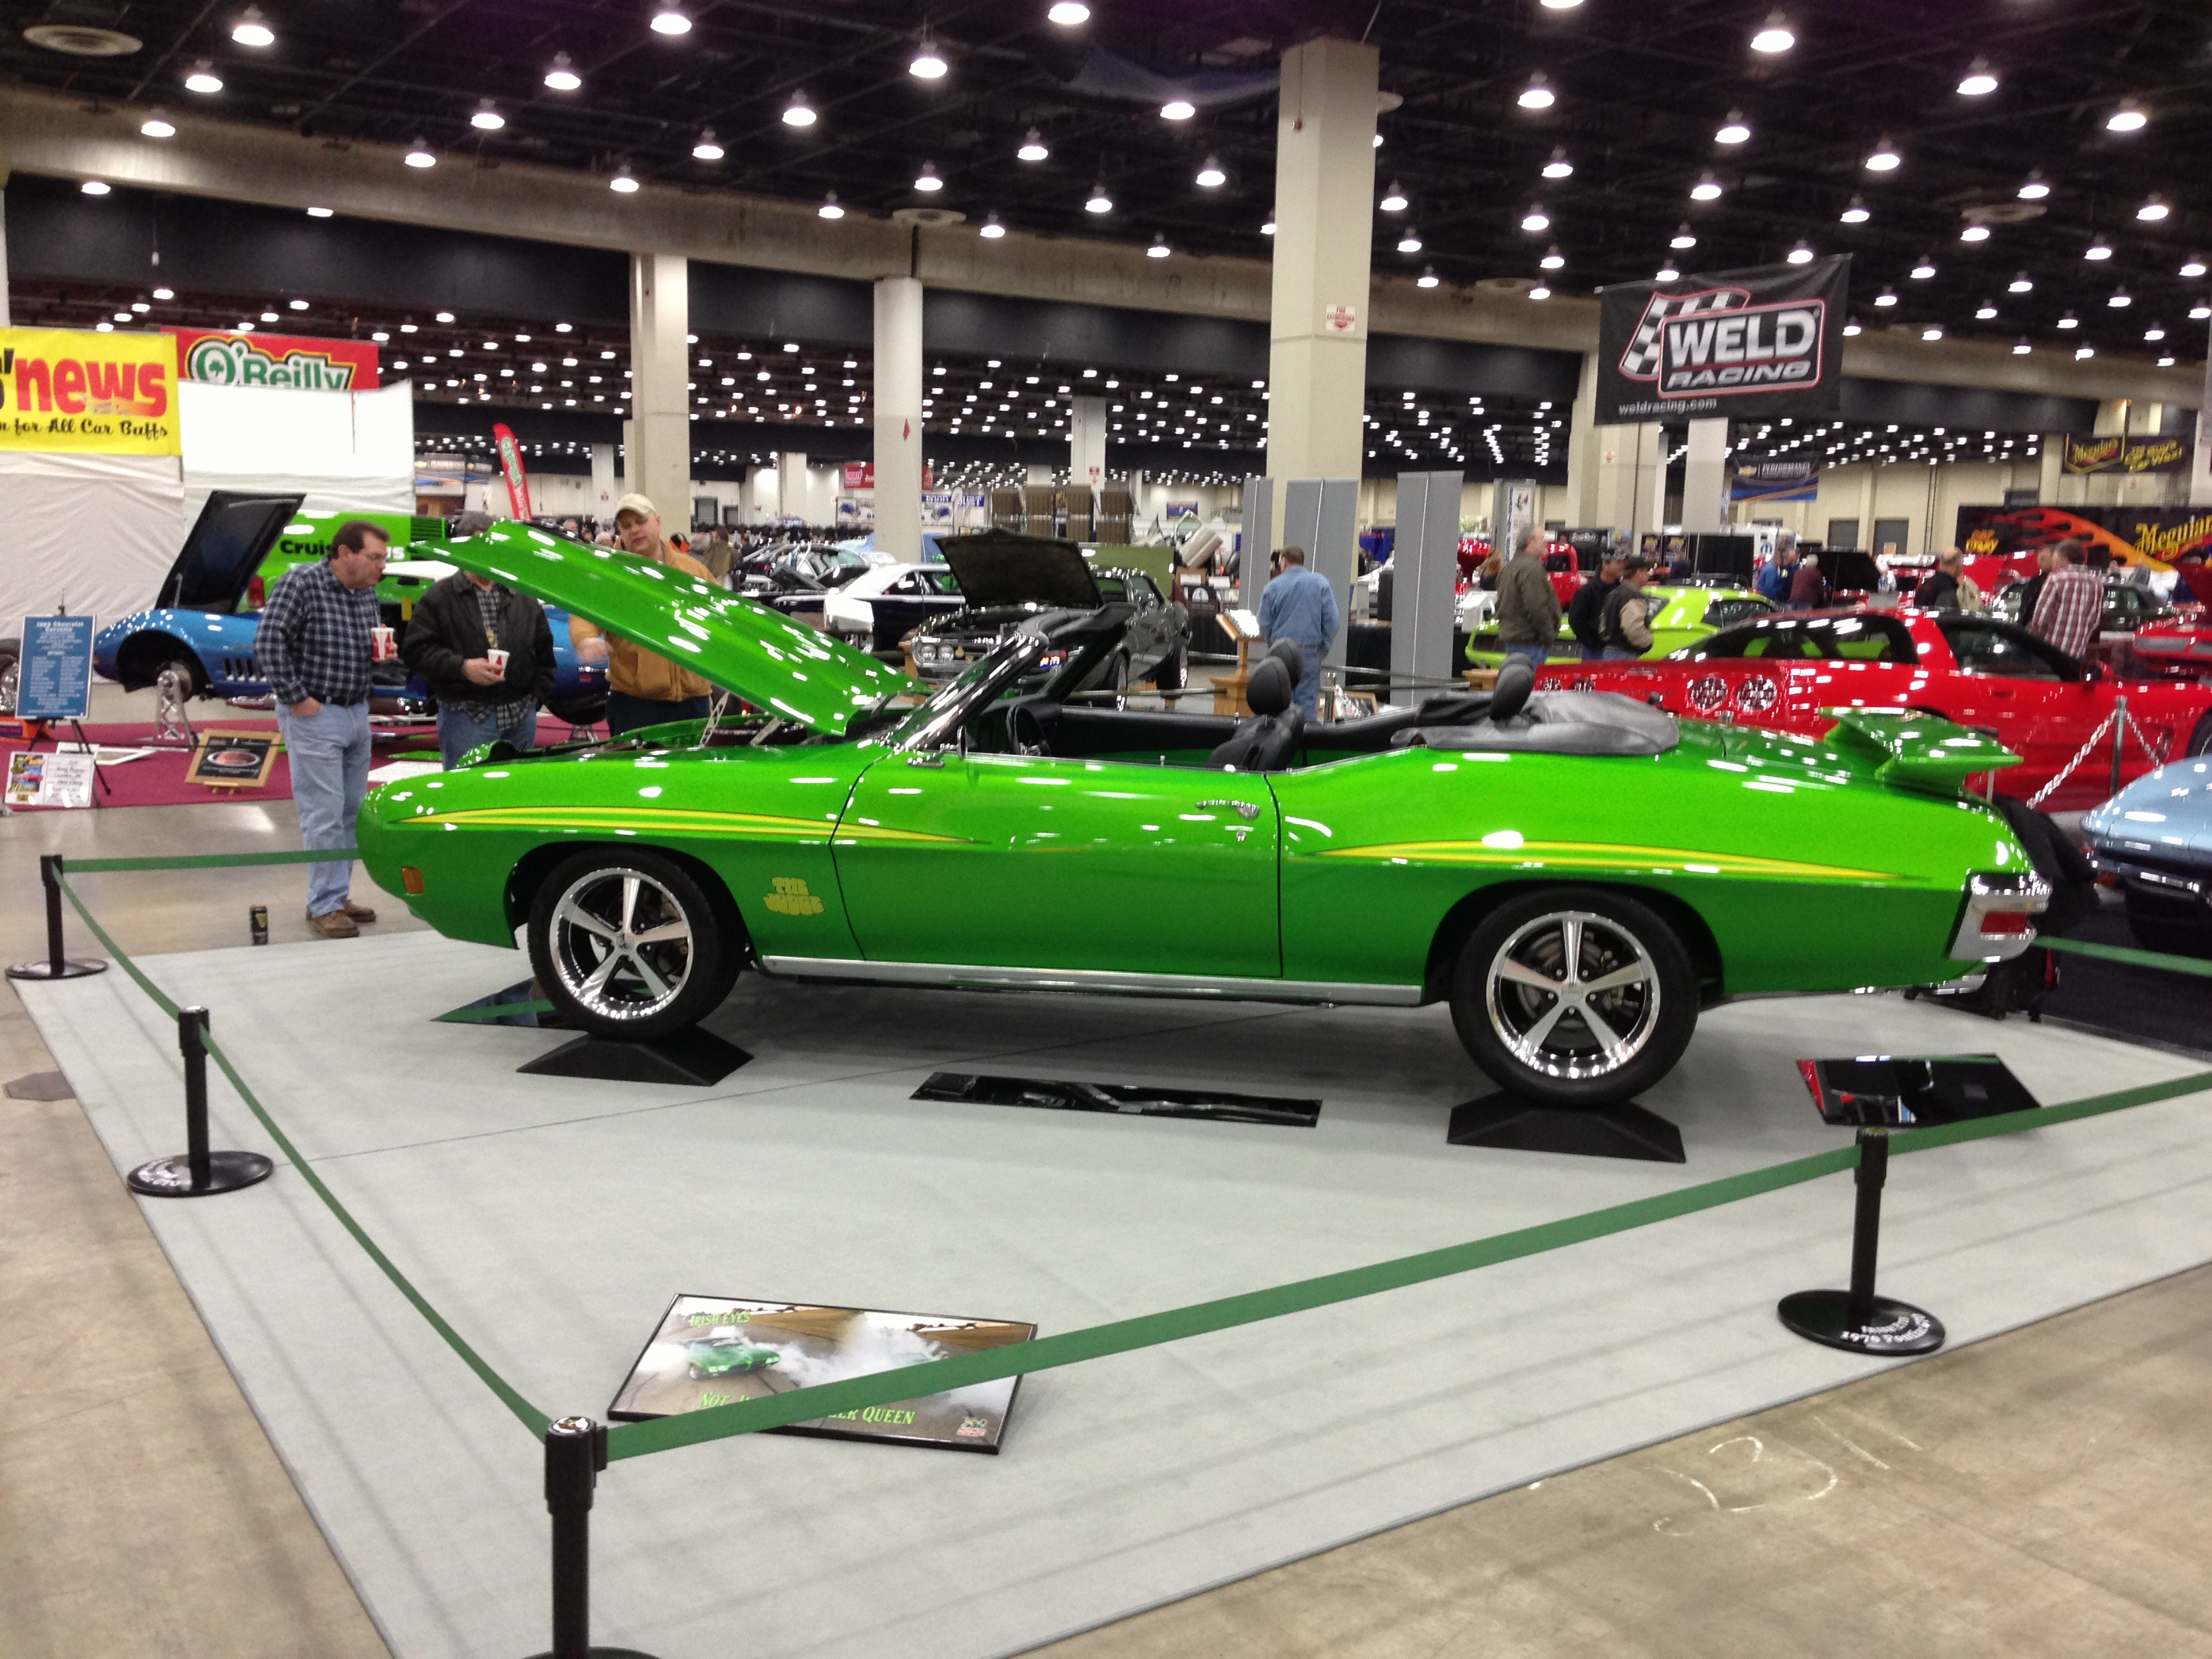 Gallery Crowd Control Posts Protect Pontiac GTO At Car Shows - Car show barriers